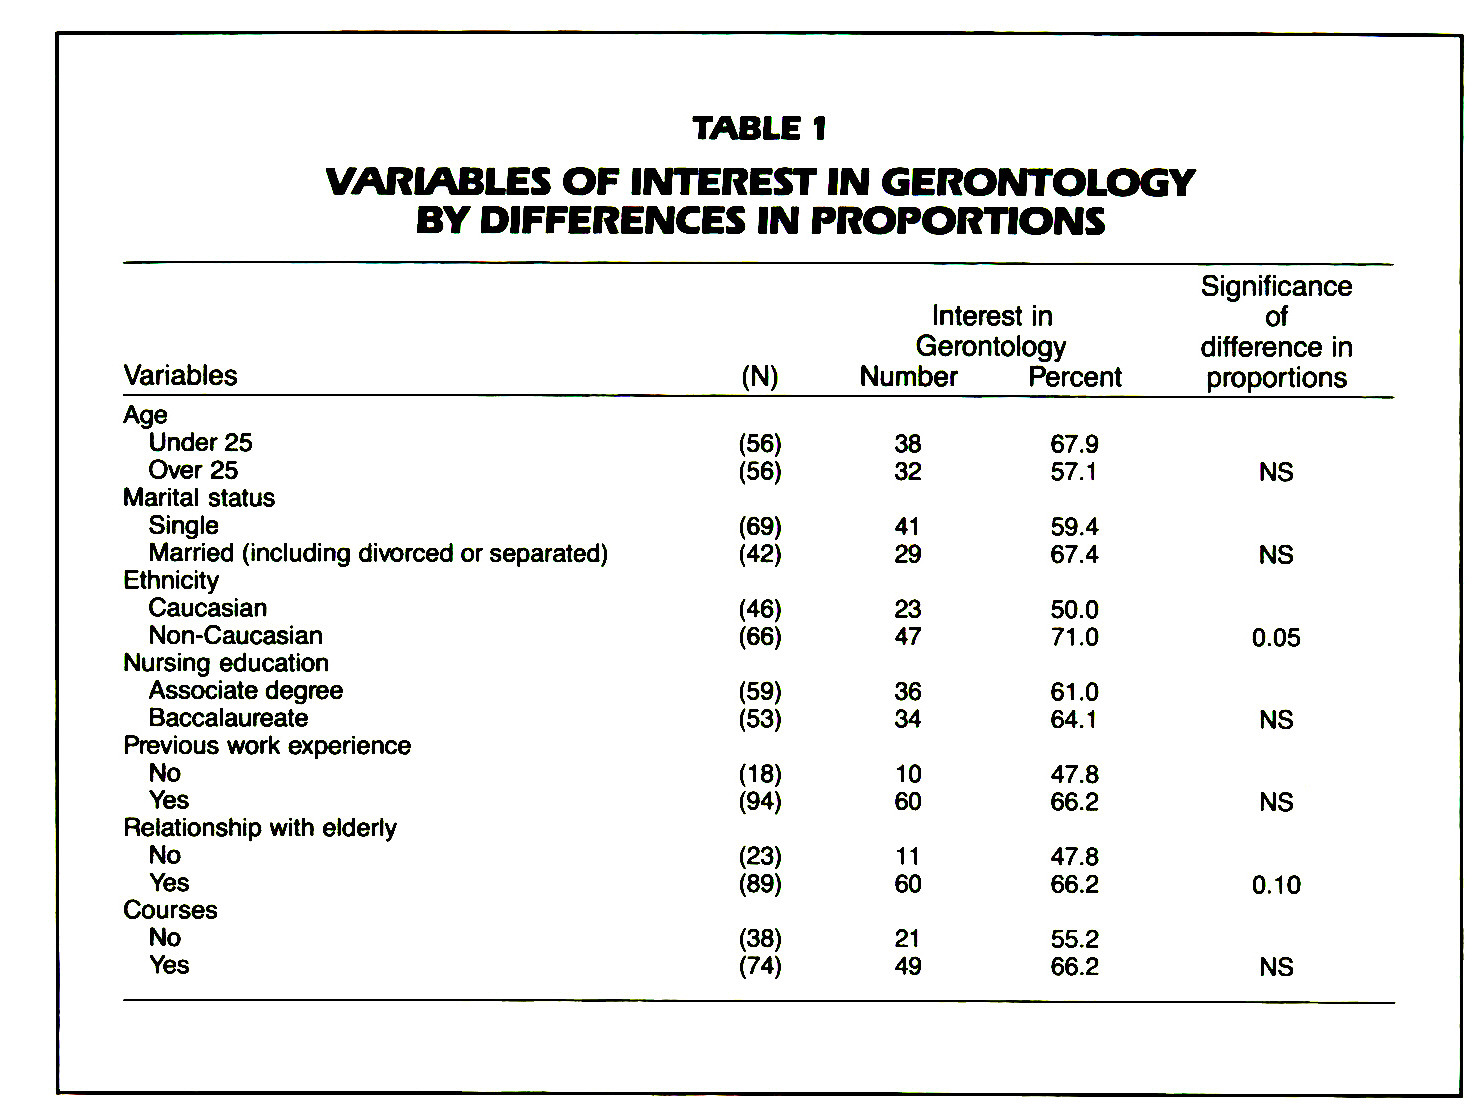 TABLE 1INTEREST IN GERONTOLCXiY VARIABLES OF BY DIFFERENCES IN PROPORTIONS